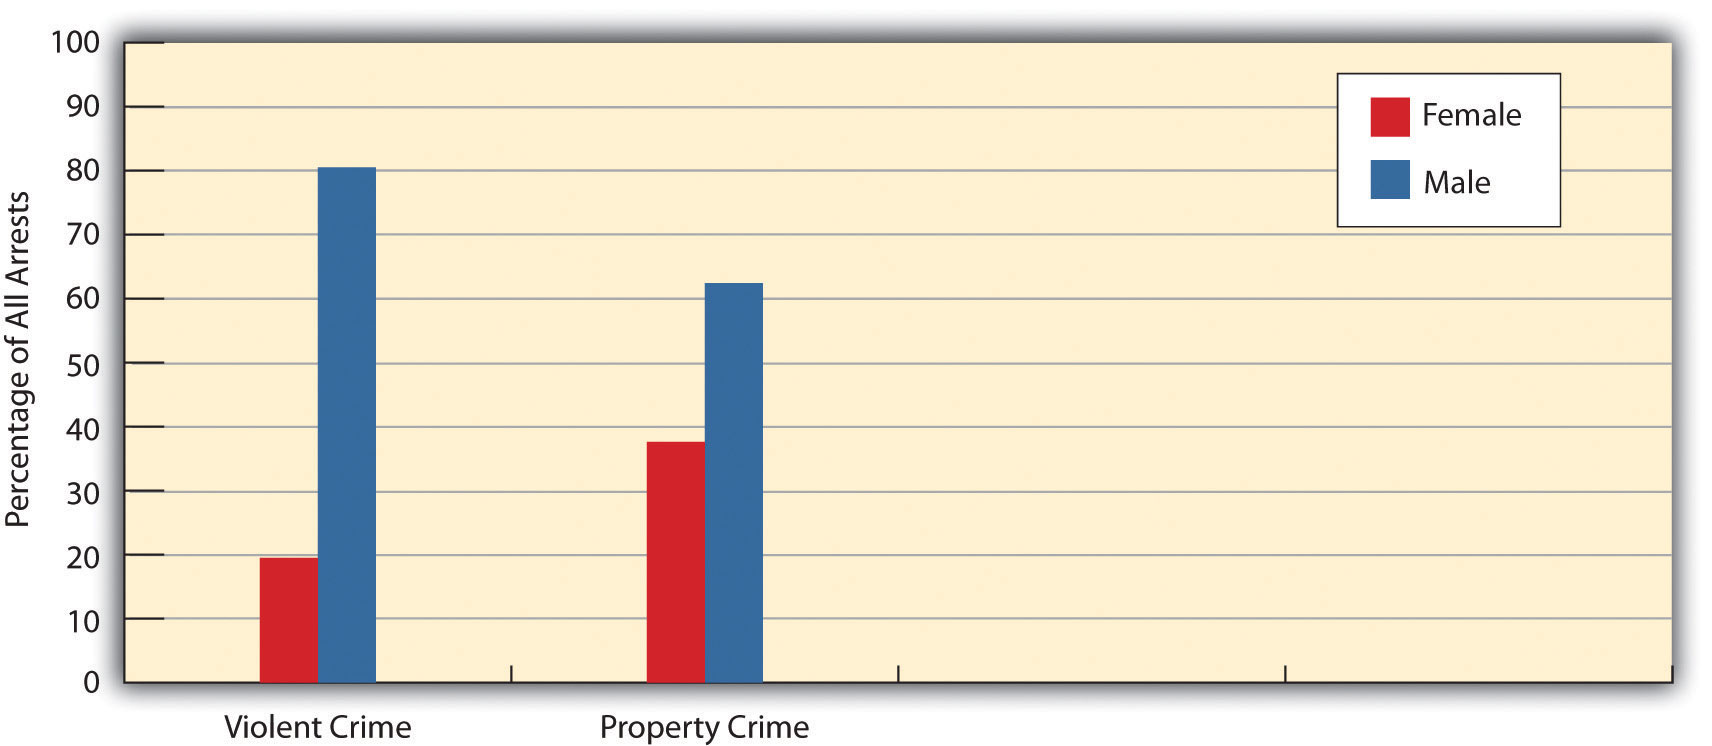 crime as a social problem essays Crime and poverty is a social problem essayspolls show that americans regard crime as the number one social problem facing the nation we fear being a victim of violent crime, or having our property violated, is far more than we fear being unemployed or suffering a loss of income.